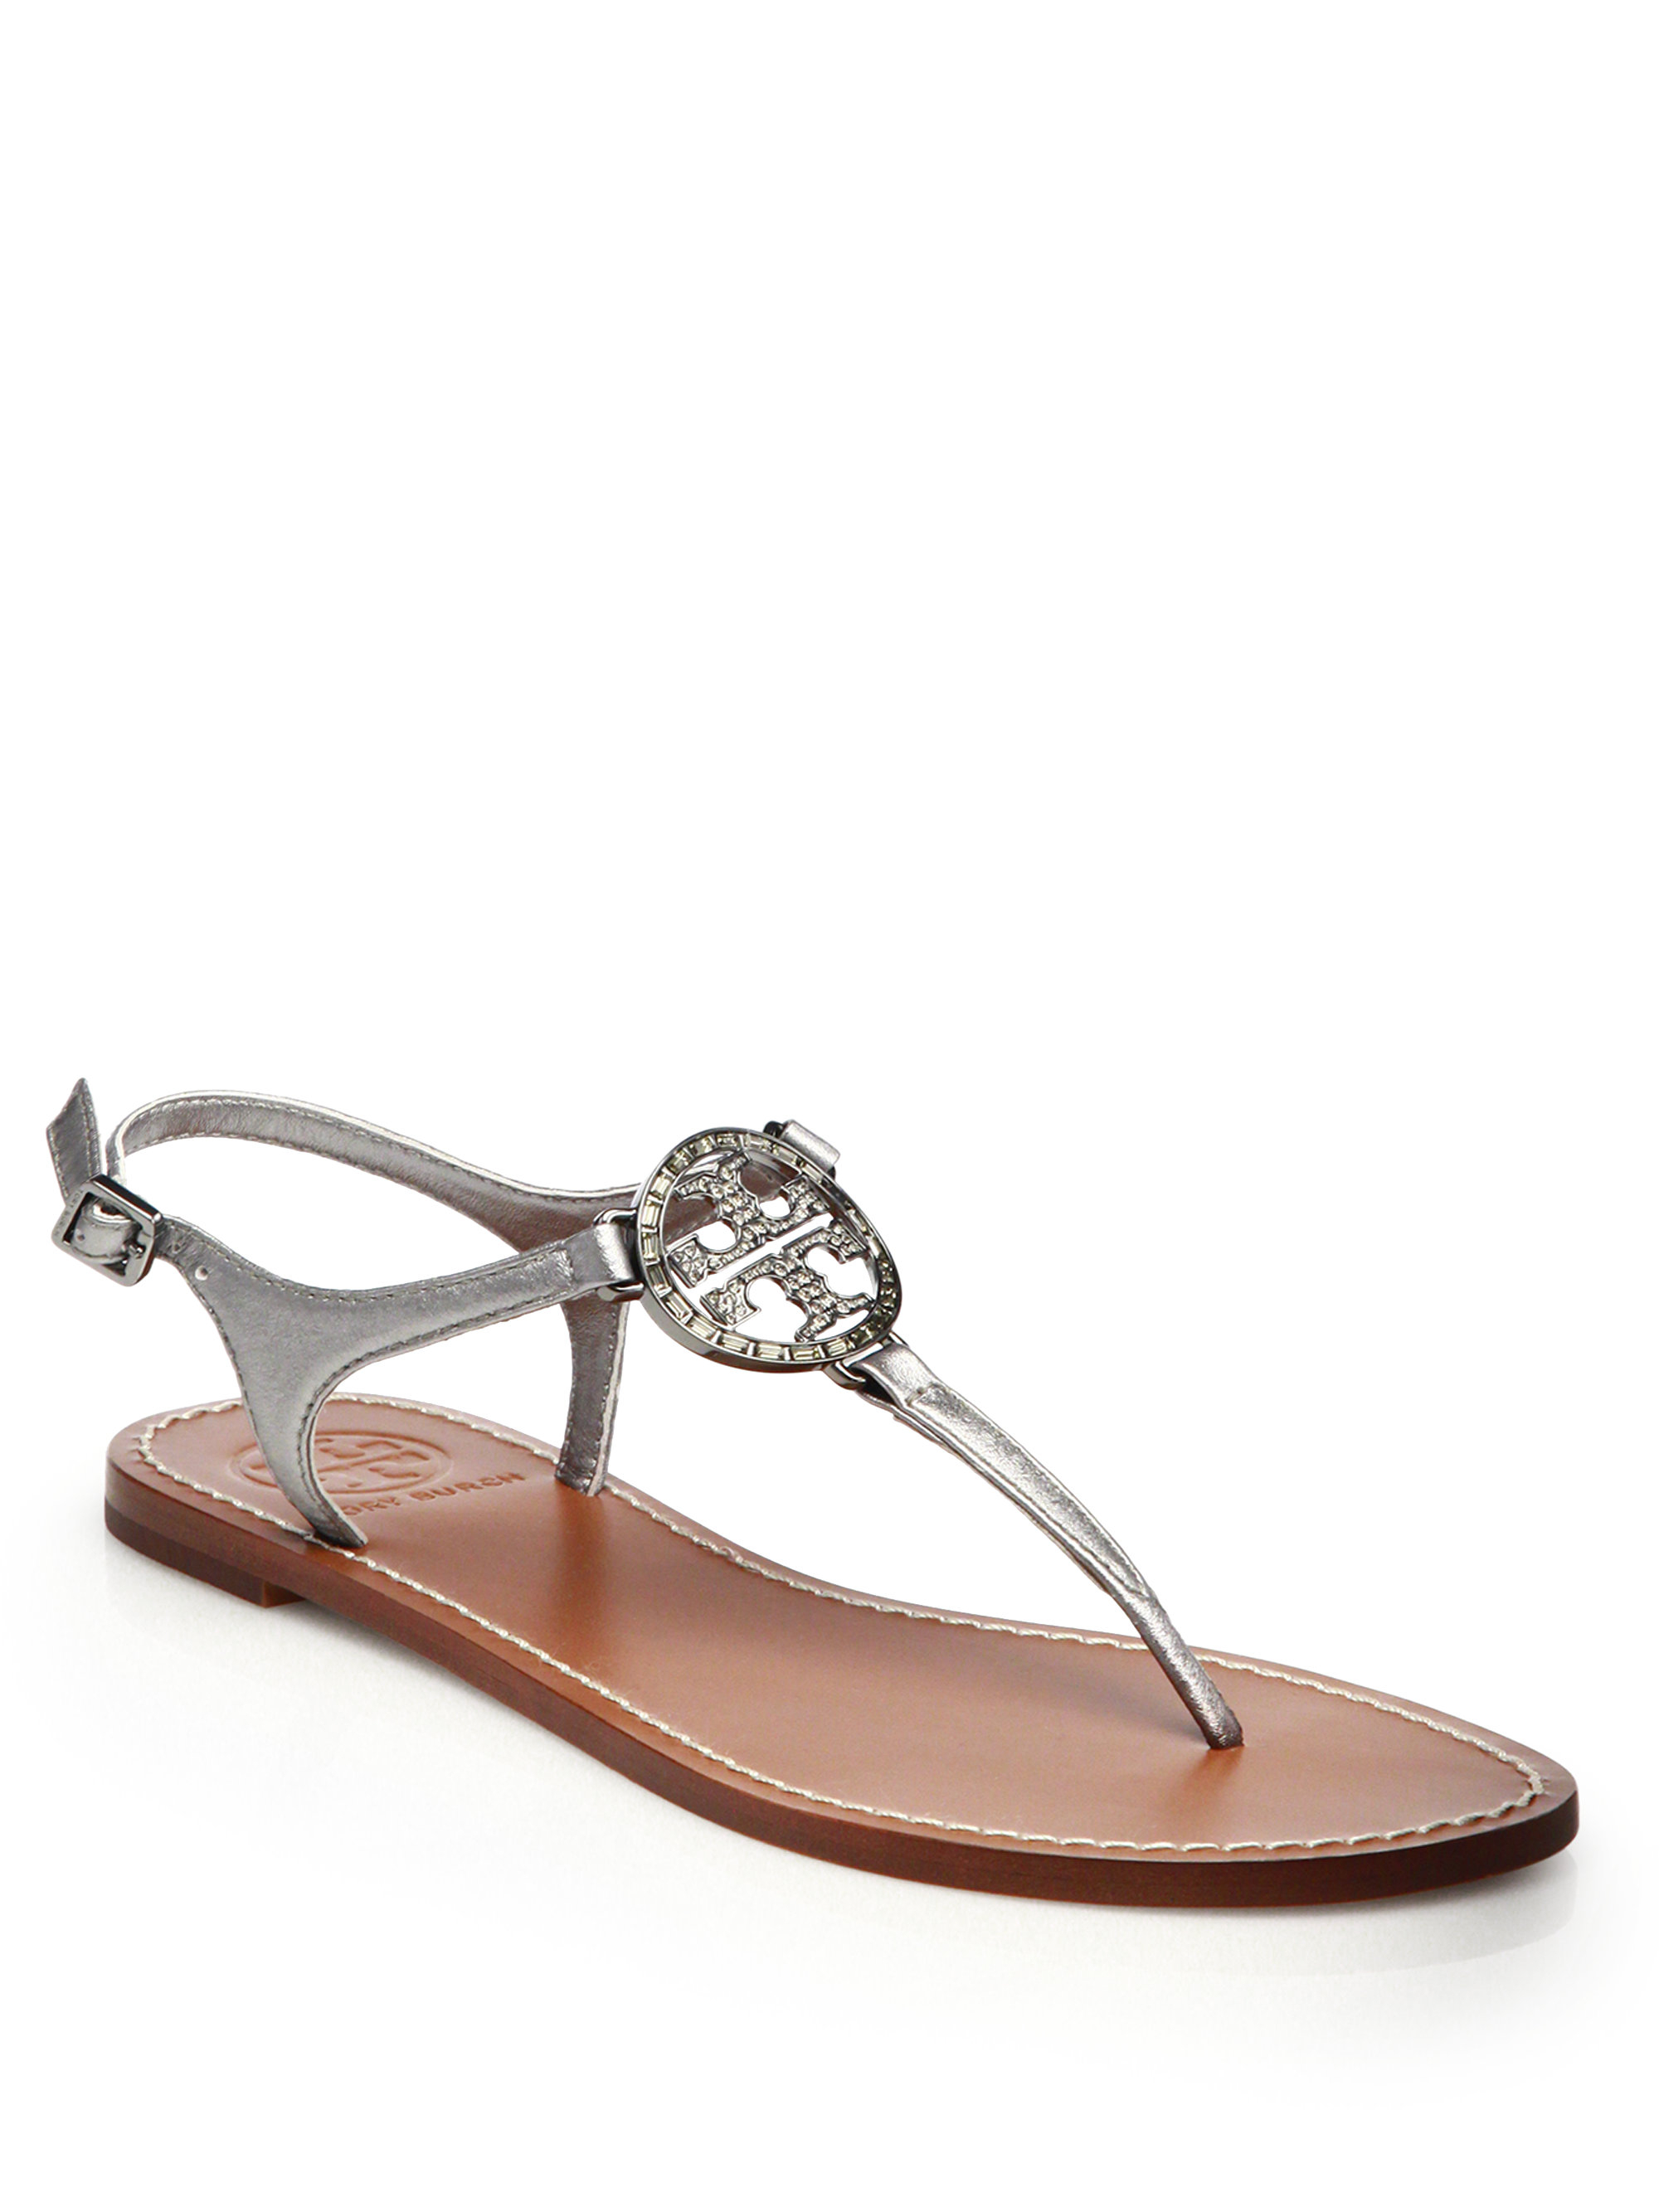 3ca218363868 Lyst - Tory Burch Violet Metallic Leather Thong Sandals in Metallic